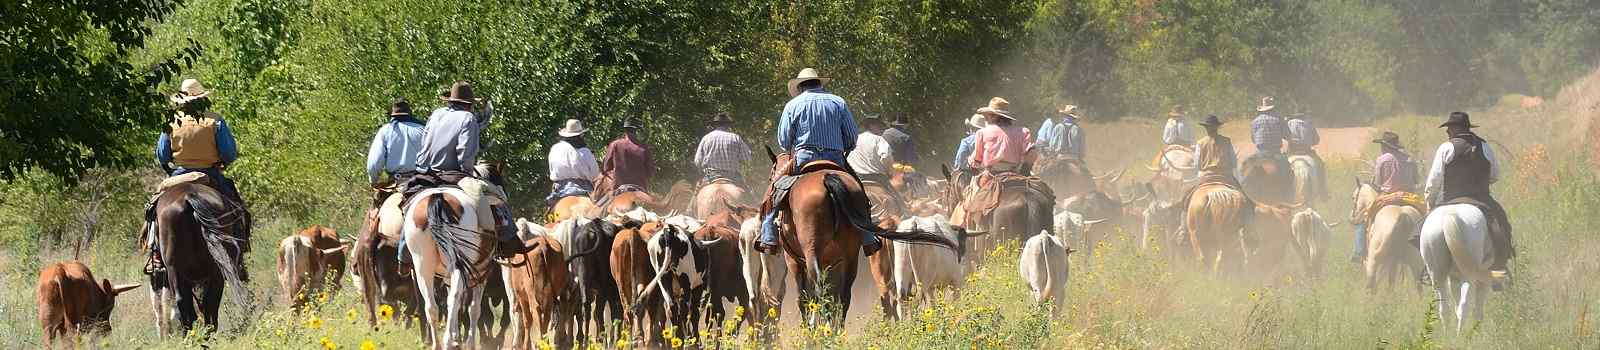 SILVER-SPUR -Kansas Cattle Drive on Dusty Kansas Road 98099291